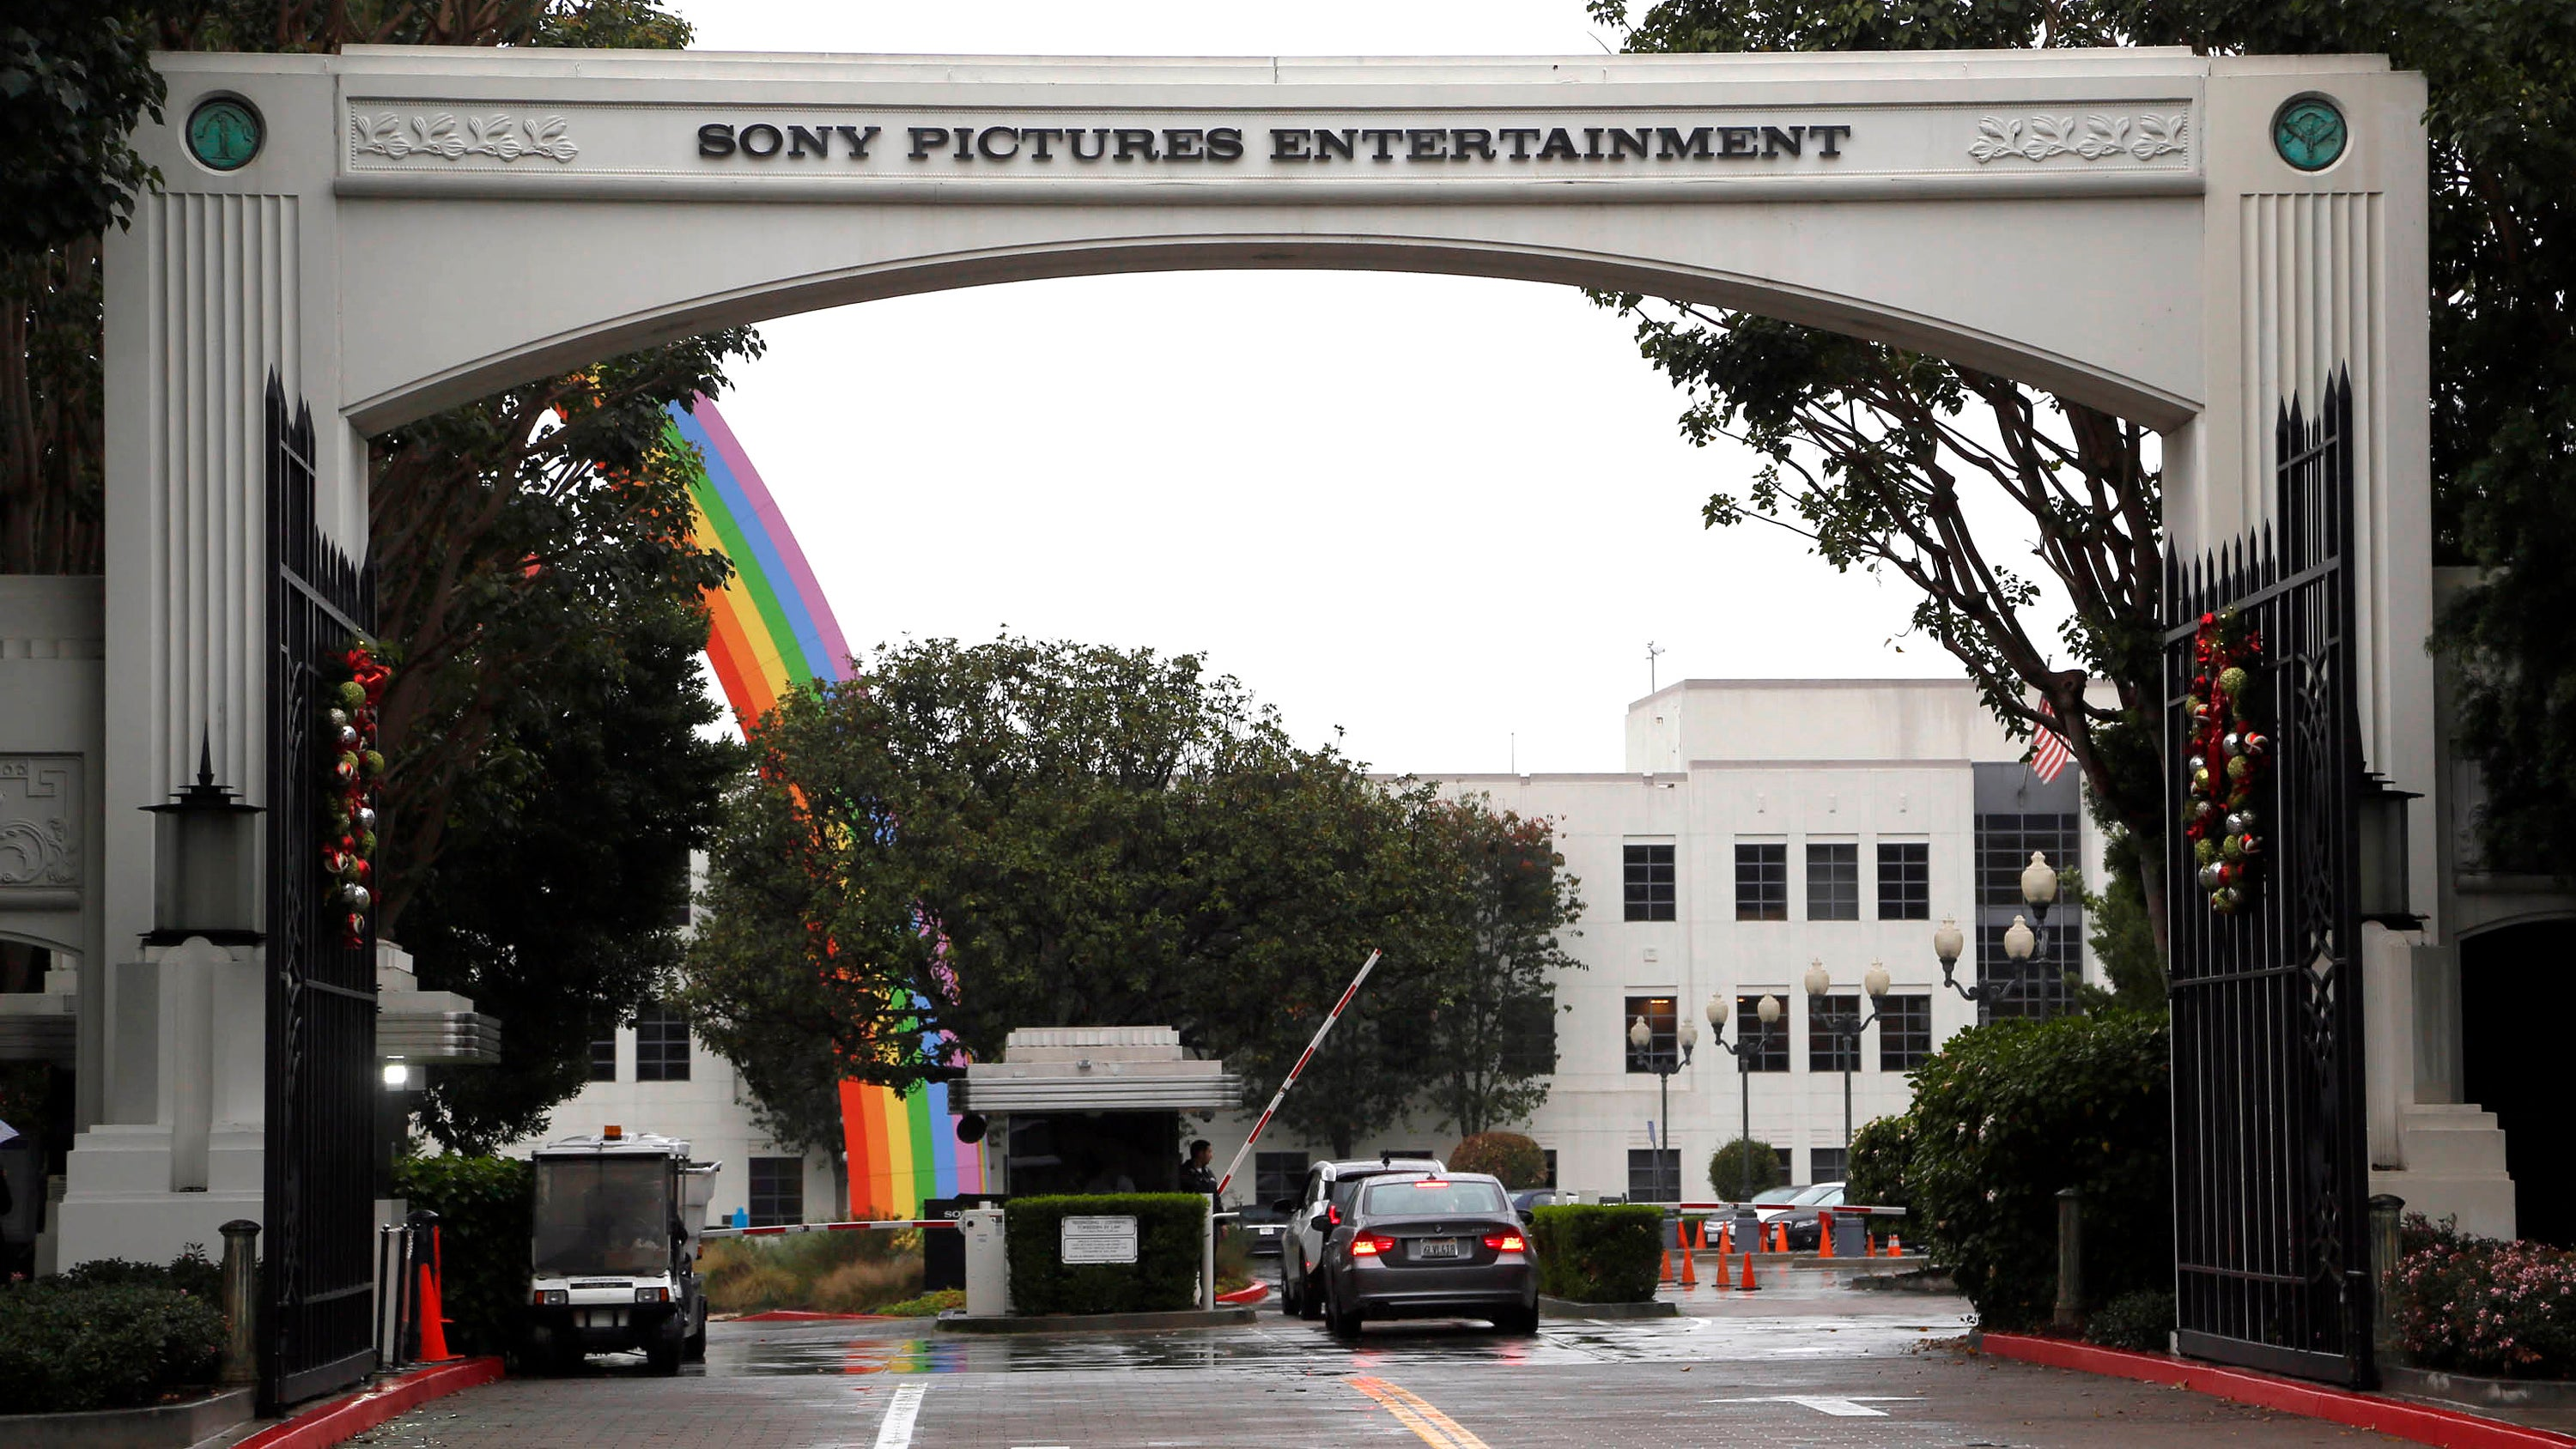 Hackers Threatened to Put Sony Pictures Employees and Families in Danger